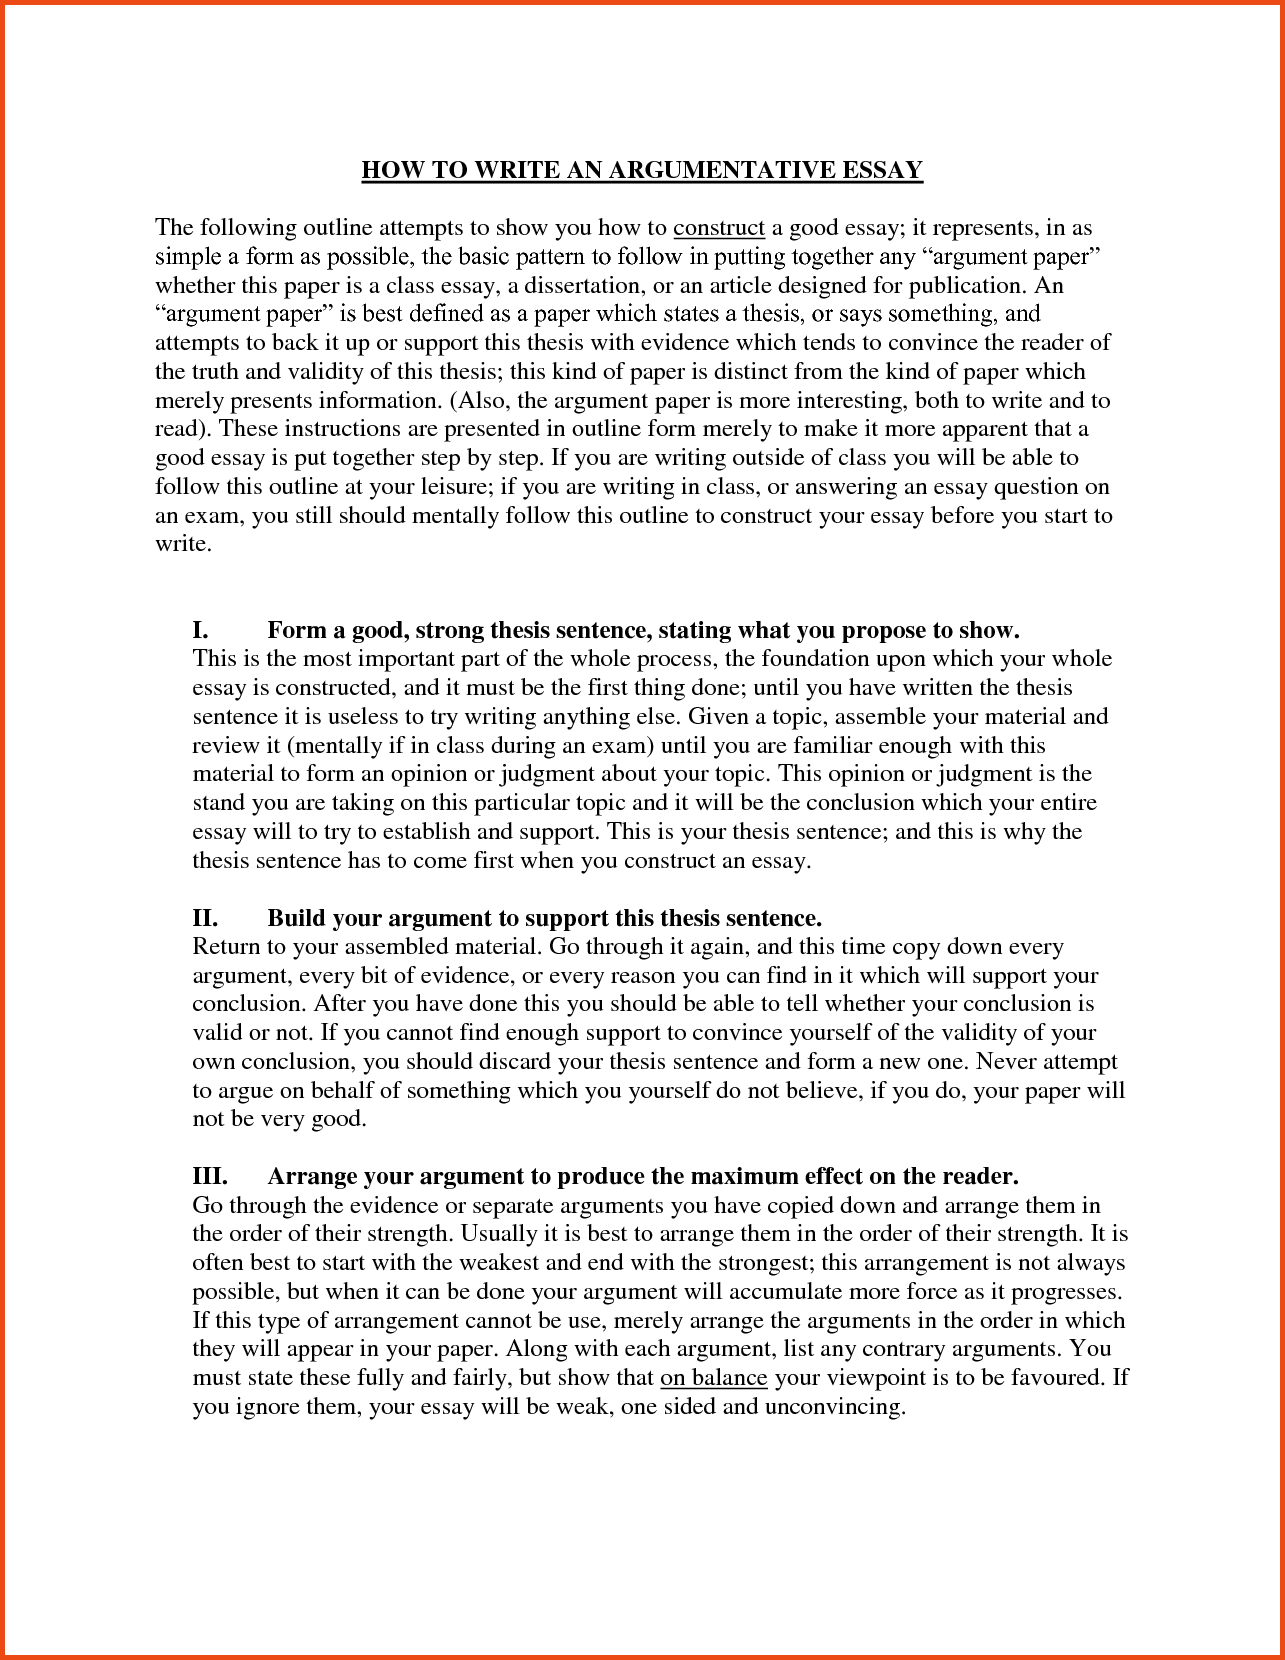 005 Essay Example How To Start An Brilliant Ideas Of Good Ways About Yourself Dissertation Nice Amazing Write A Paper On Climate Change Expository Examples With Quote Format Full